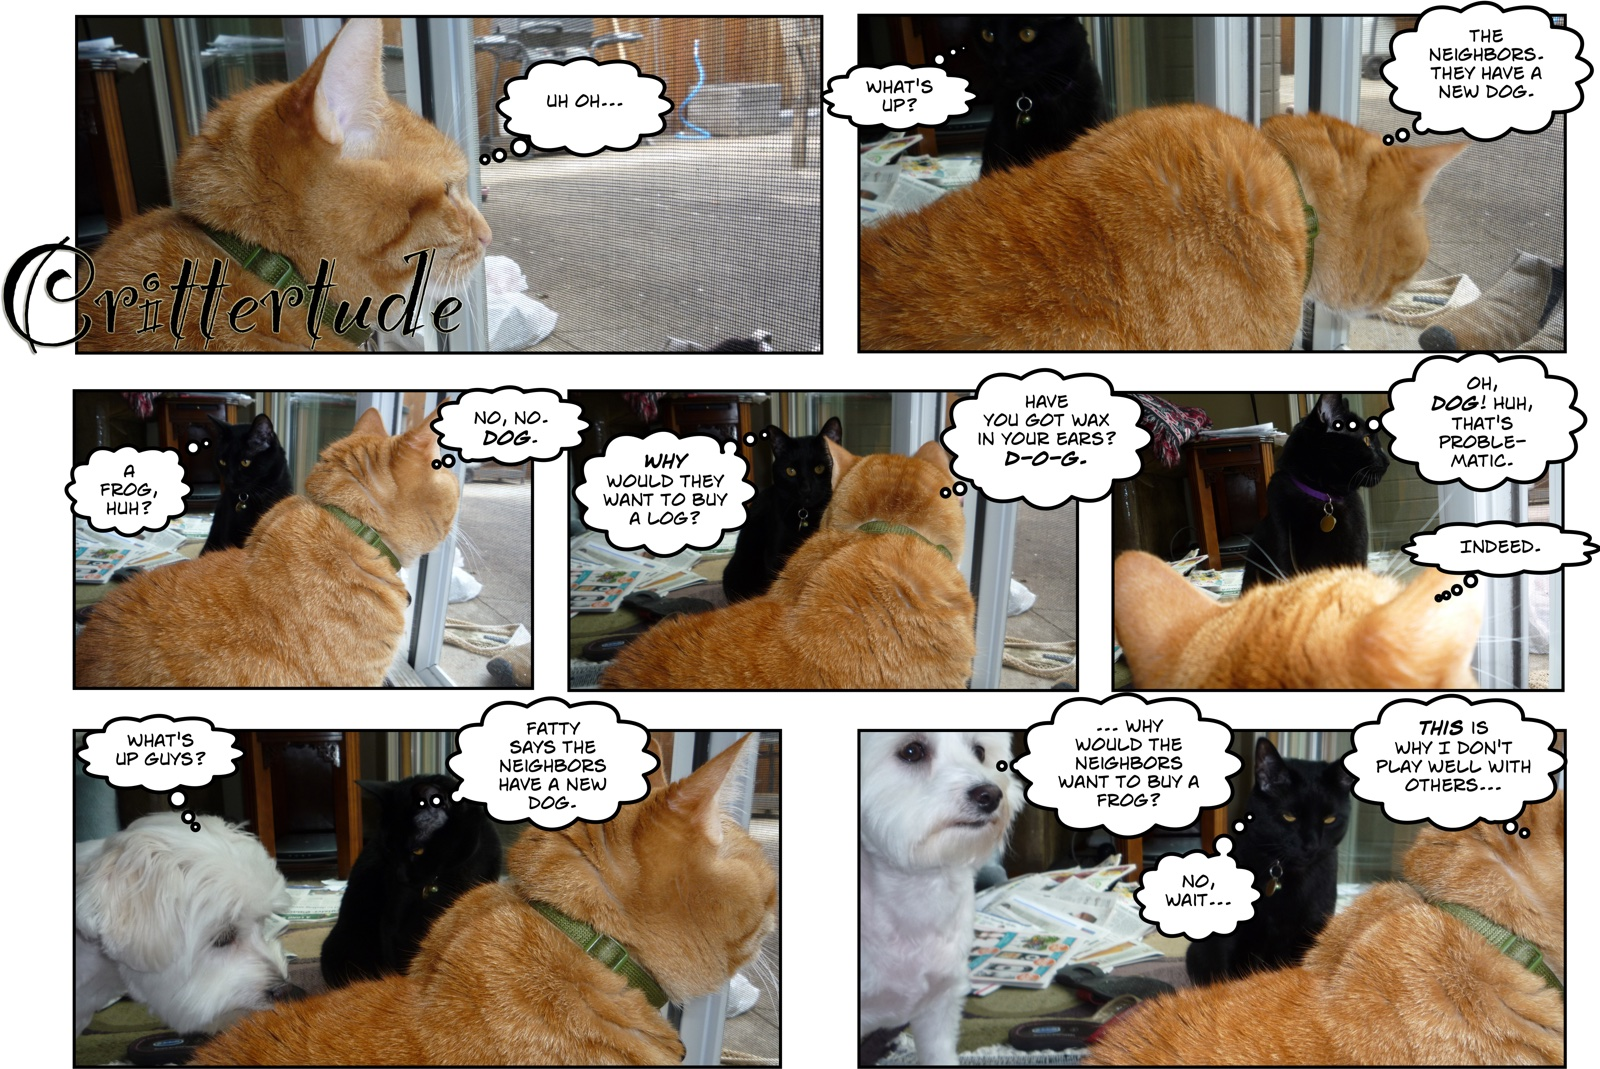 comic of cats and dog talking about frogs